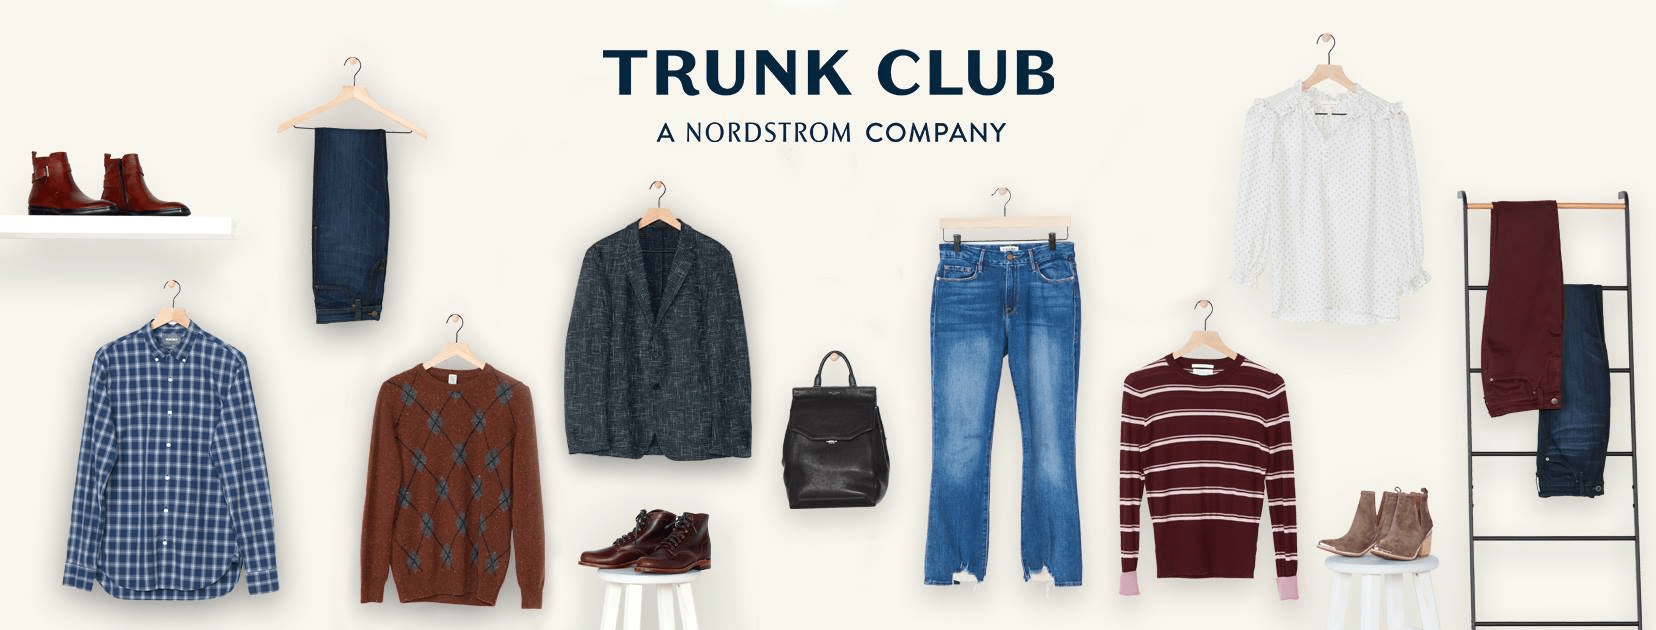 Trunk Club Black Friday 2018 Coupon: Get Up To $200 Trunk Club Credits With Gift Card Purchases!